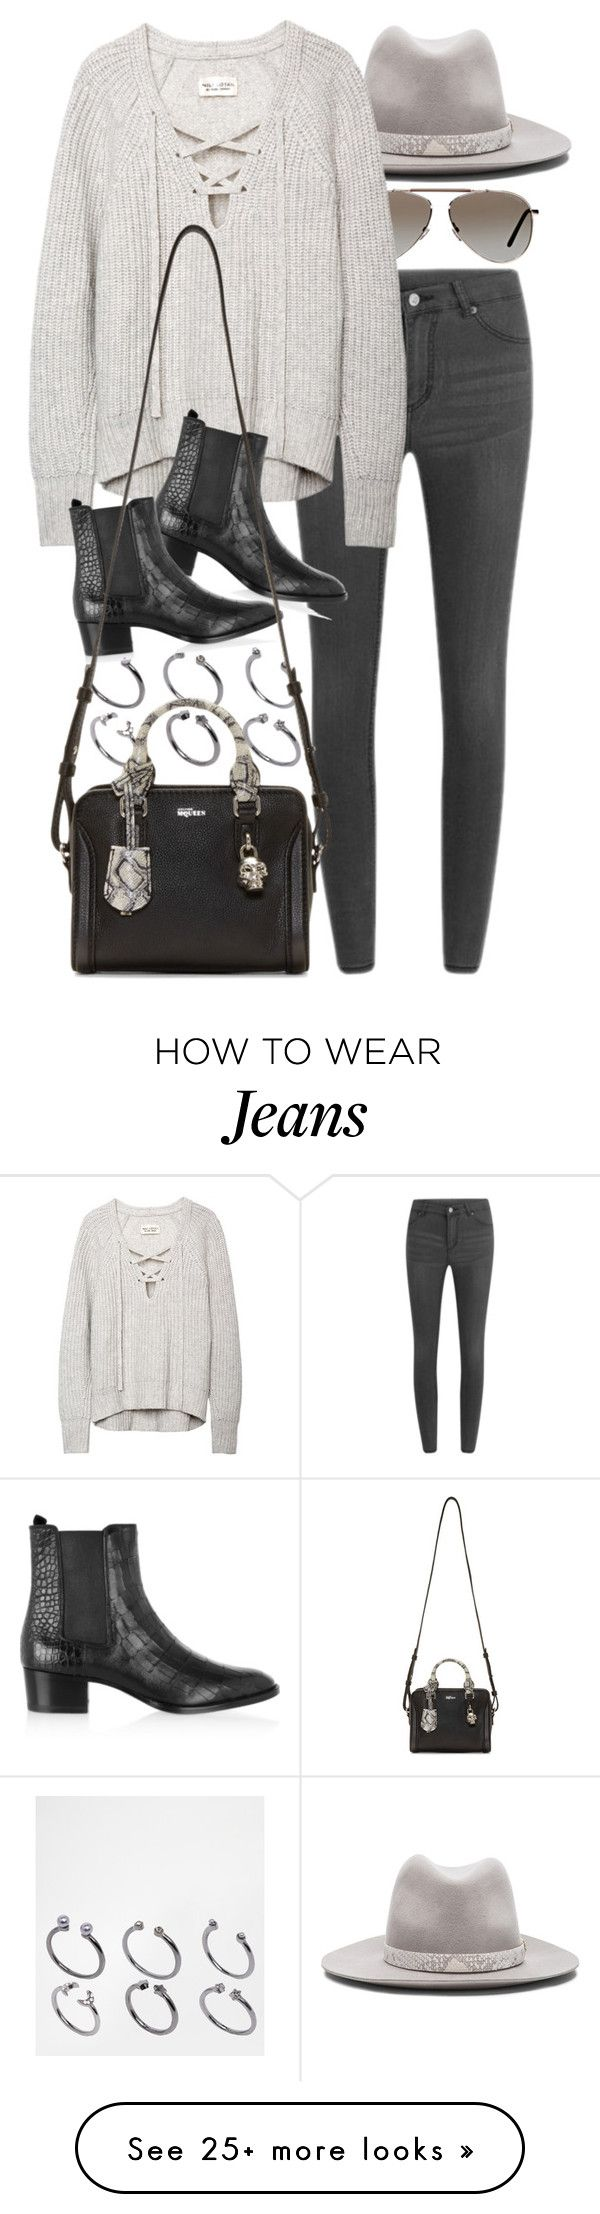 """Untitled #7893"" by nikka-phillips on Polyvore featuring Tom Ford, rag & bone, ASOS, Cheap Monday, Yves Saint Laurent and Alexander McQueen"